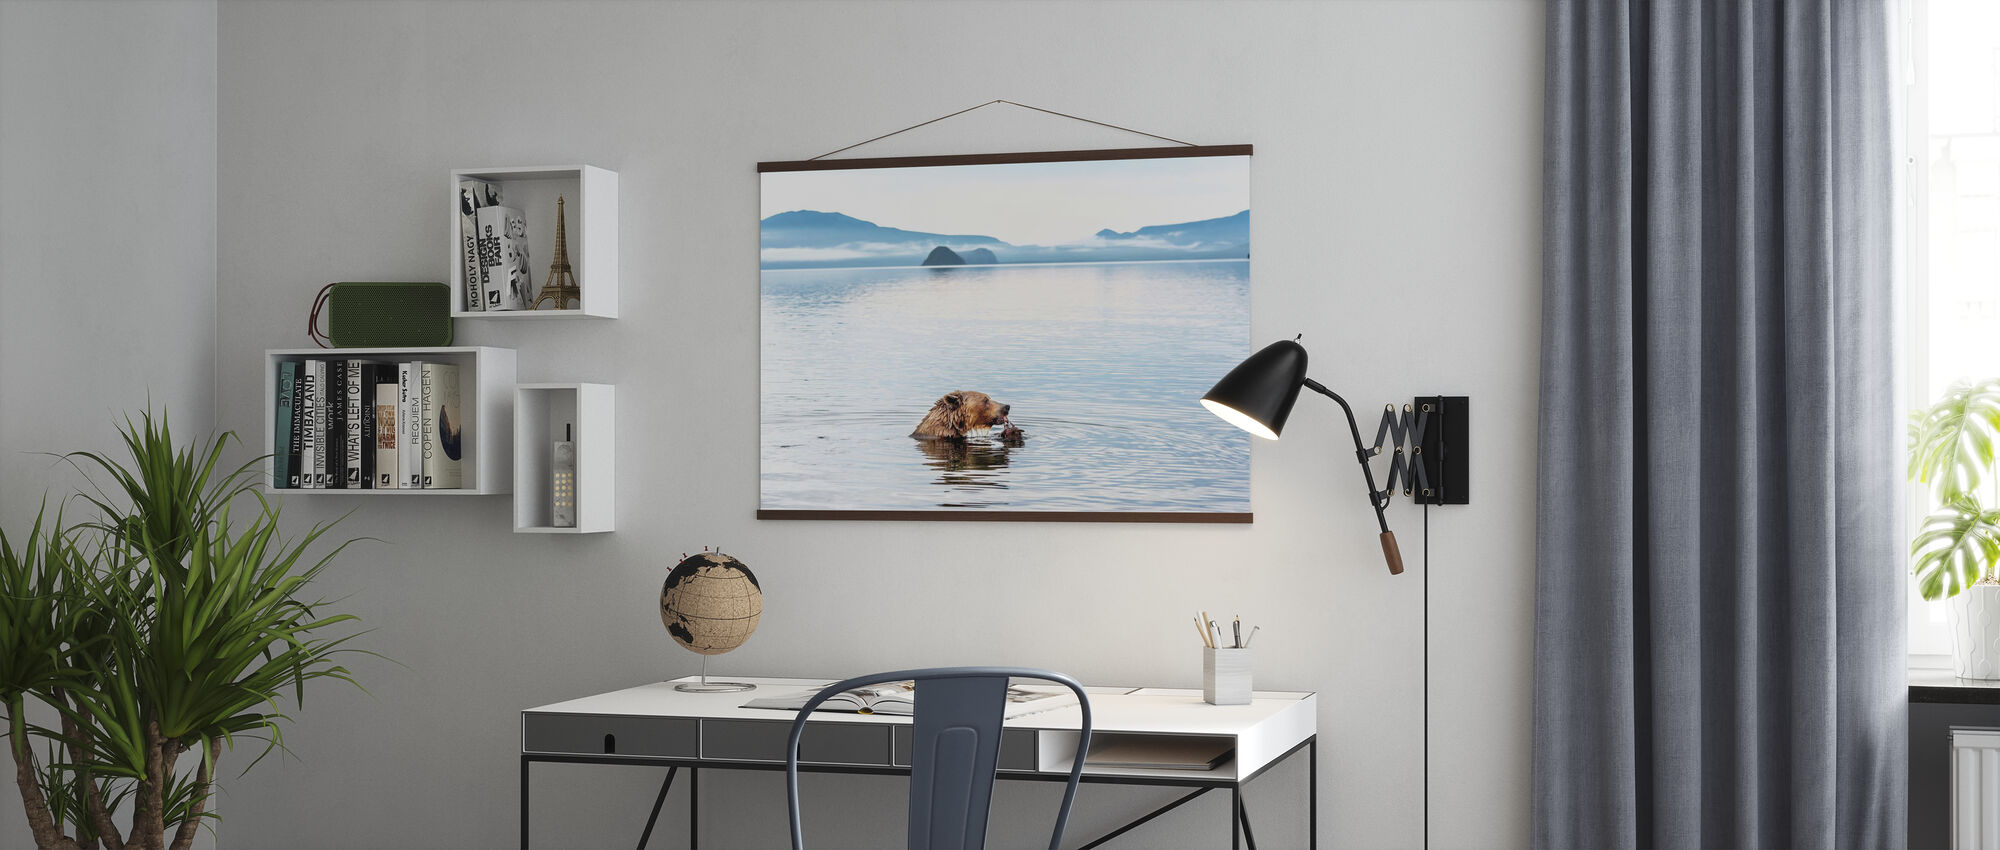 Bear Eating in the River - Poster - Office